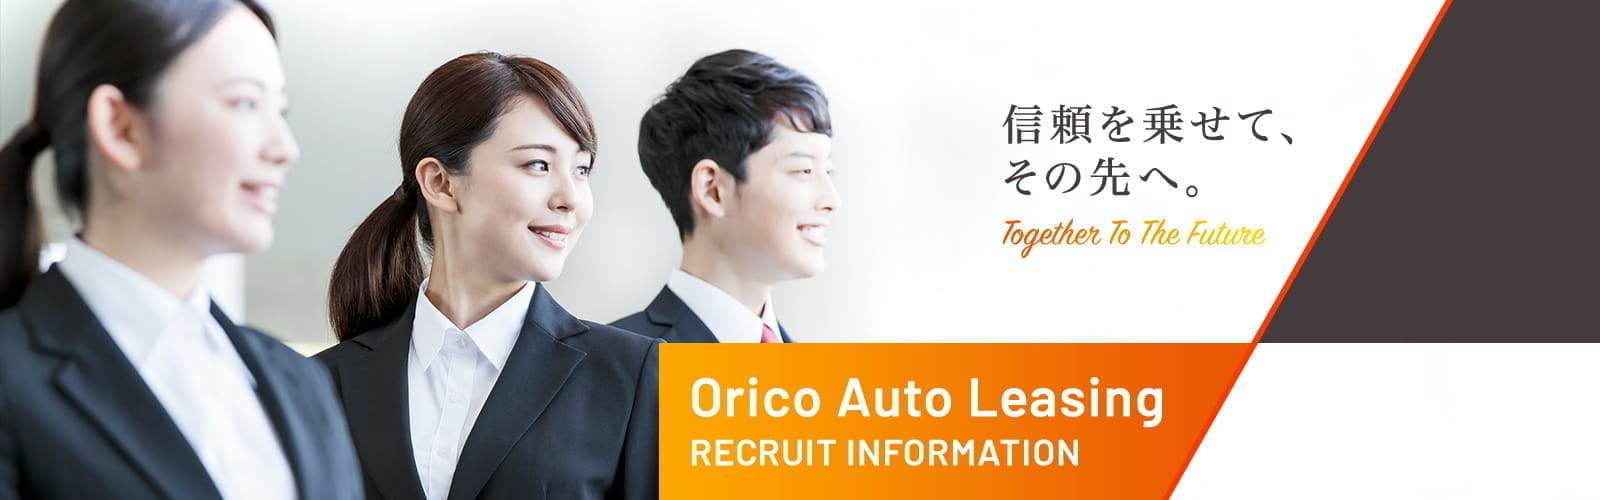 信頼を乗せて、その先へ。Orico Auto Leasing RECRUIT INFORMATION